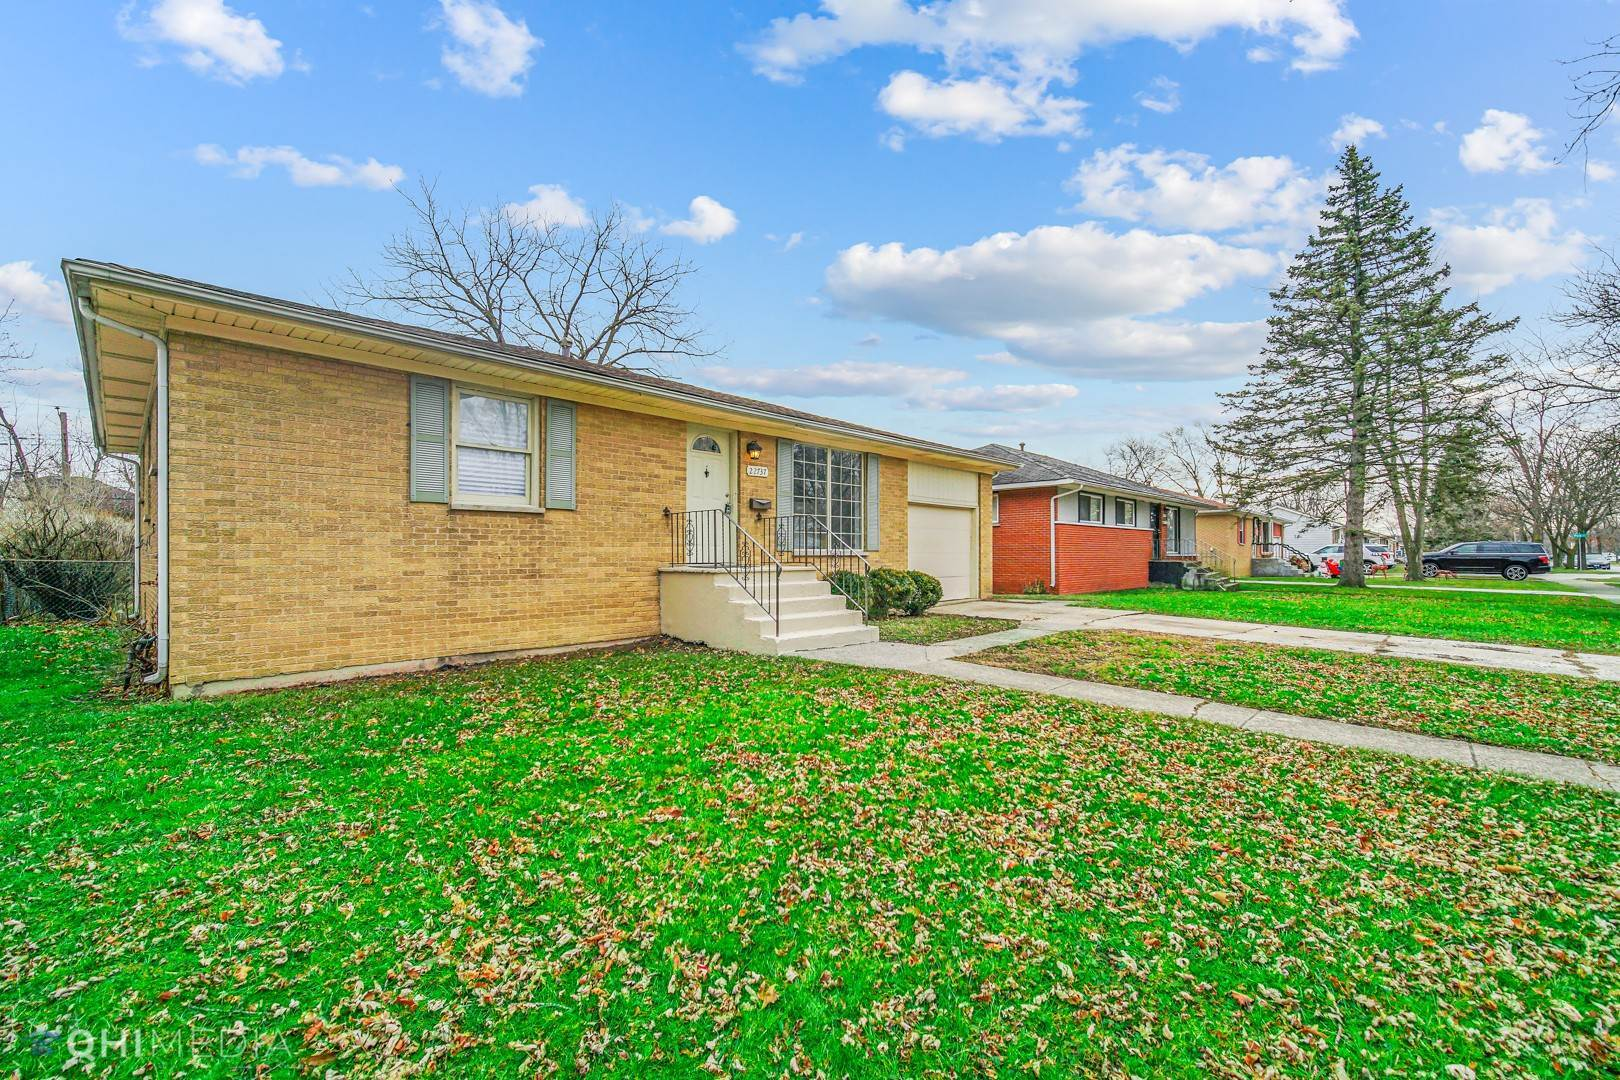 Single Family Homes for Sale at 22737 Ridgeway Avenue Richton Park, Illinois 60471 United States